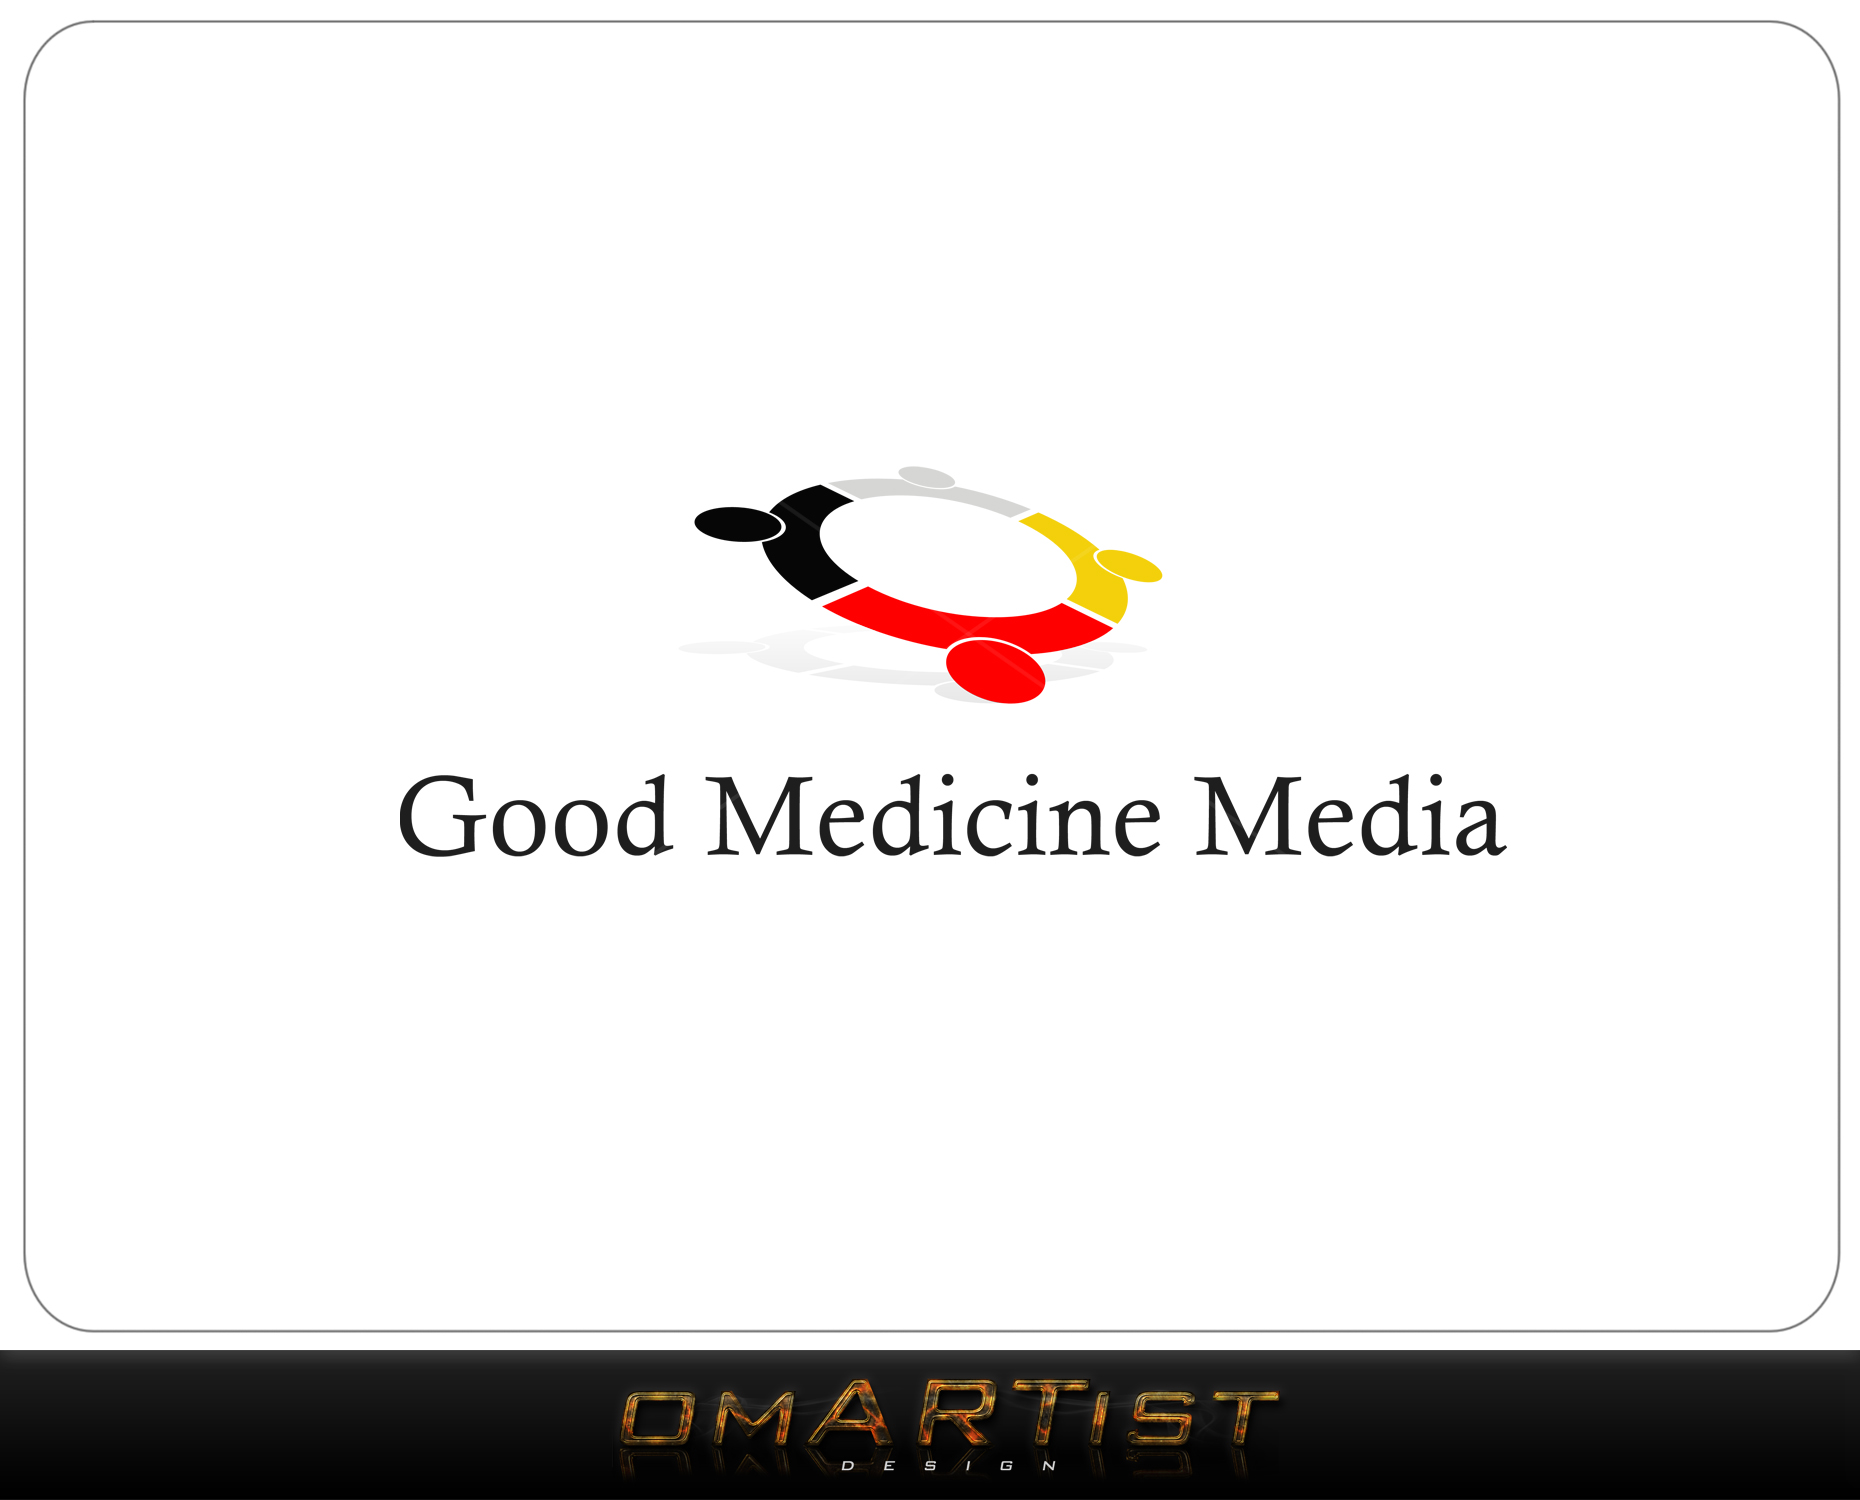 Logo Design by omARTist - Entry No. 72 in the Logo Design Contest Good Medicine Media Logo Design.